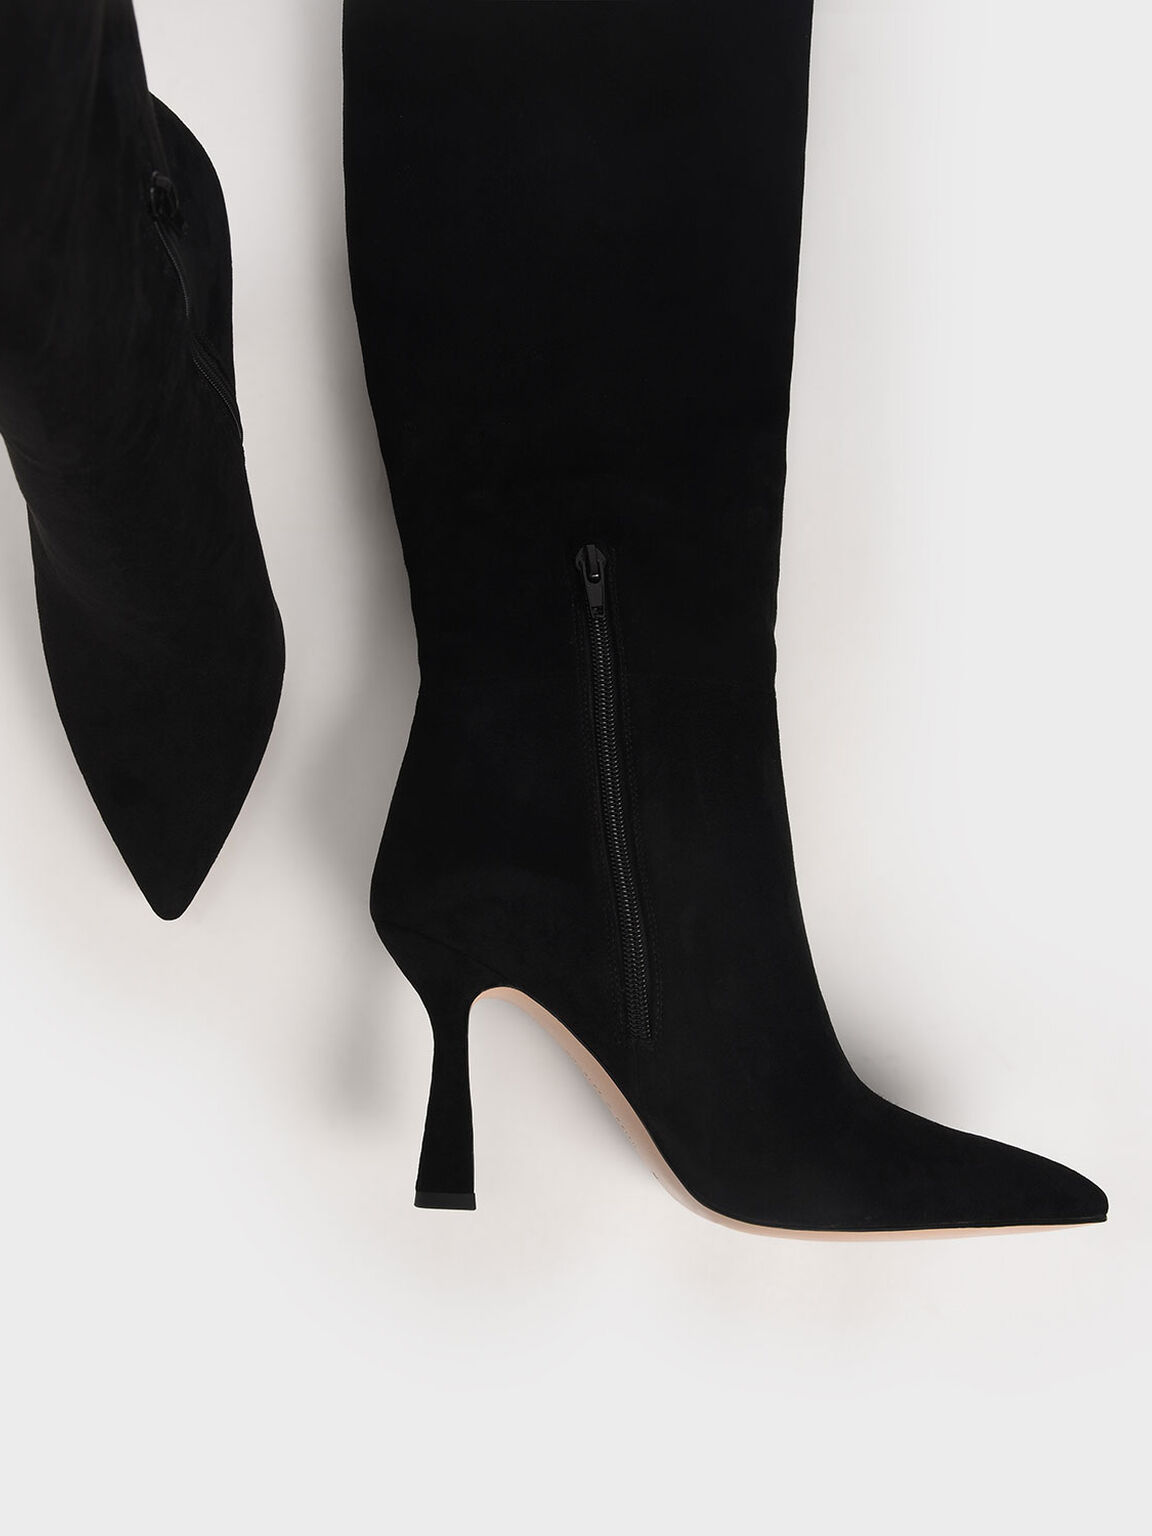 Textured Sculptural Heel Knee High Boots, Black, hi-res